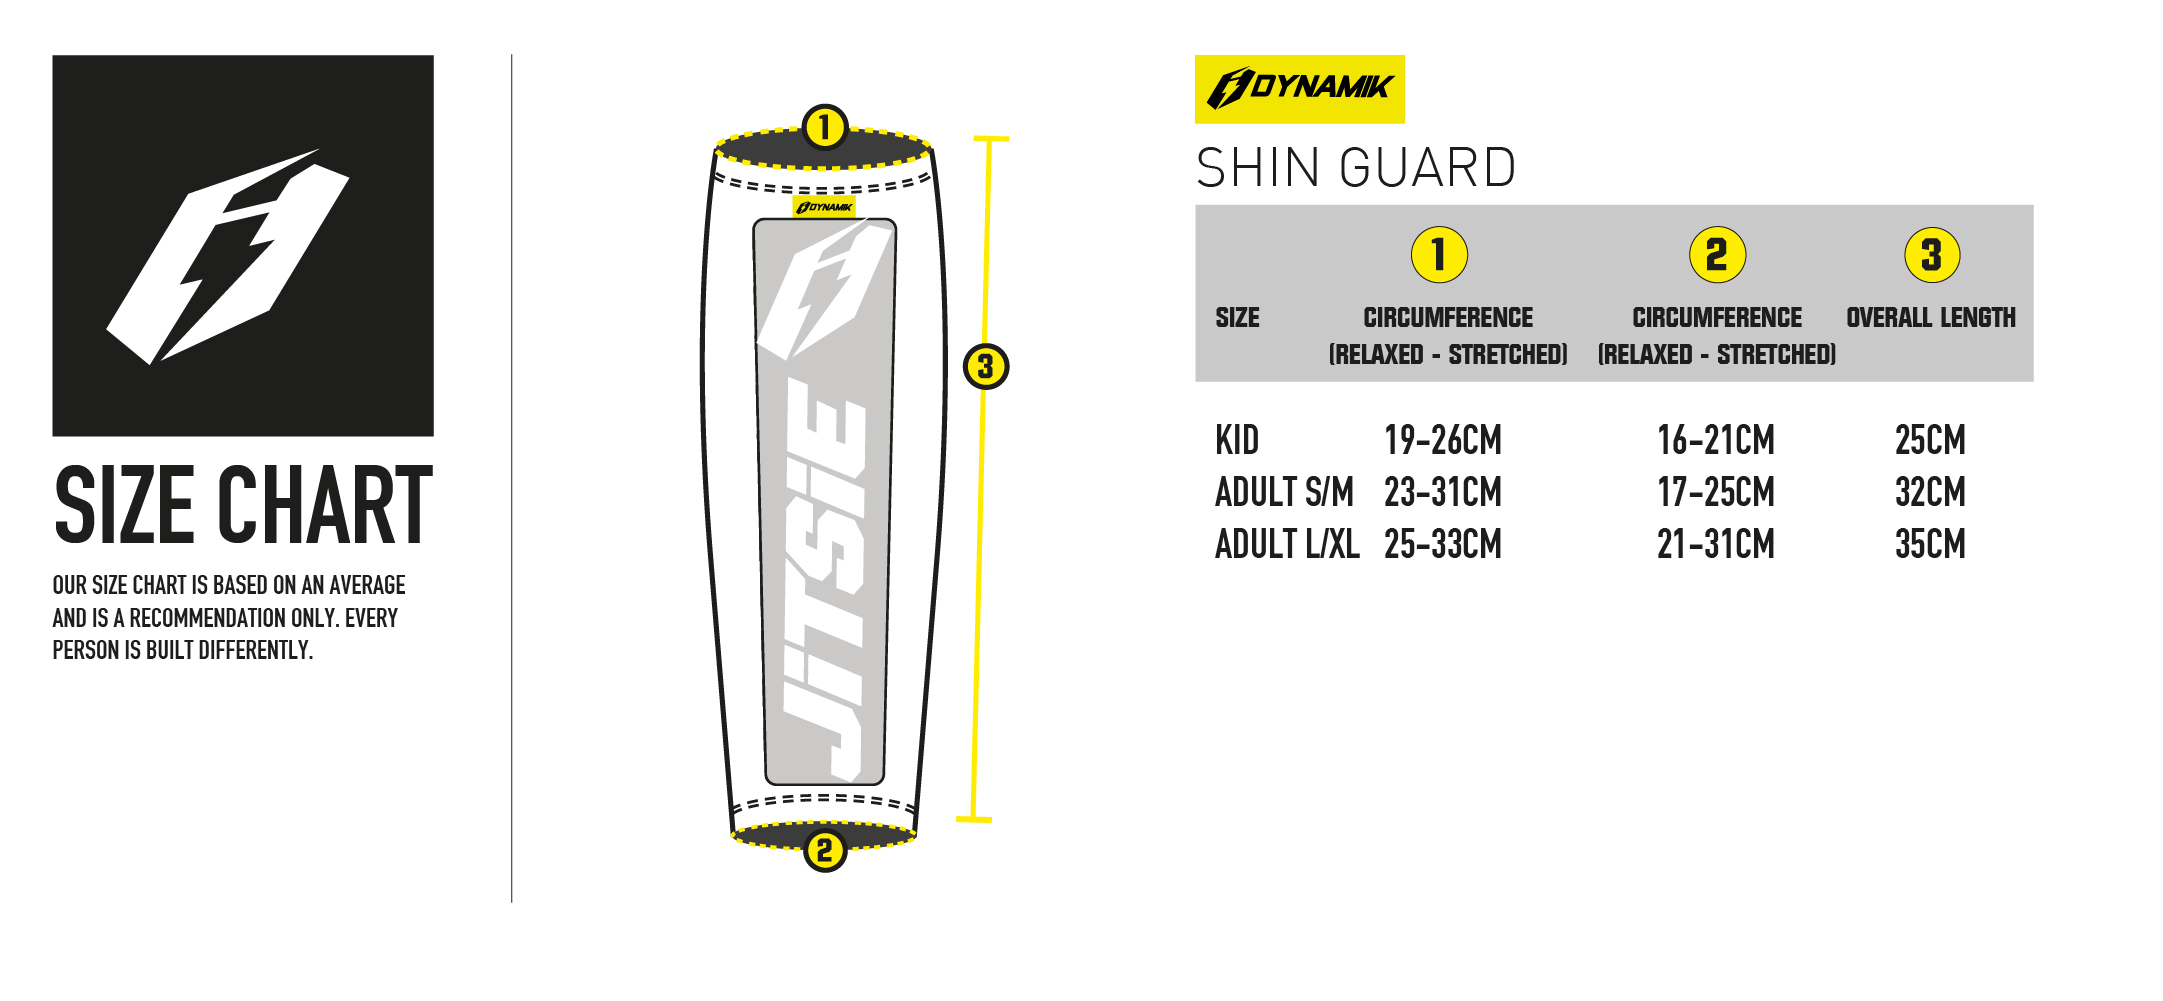 sizechart_shin_guard_2.jpg